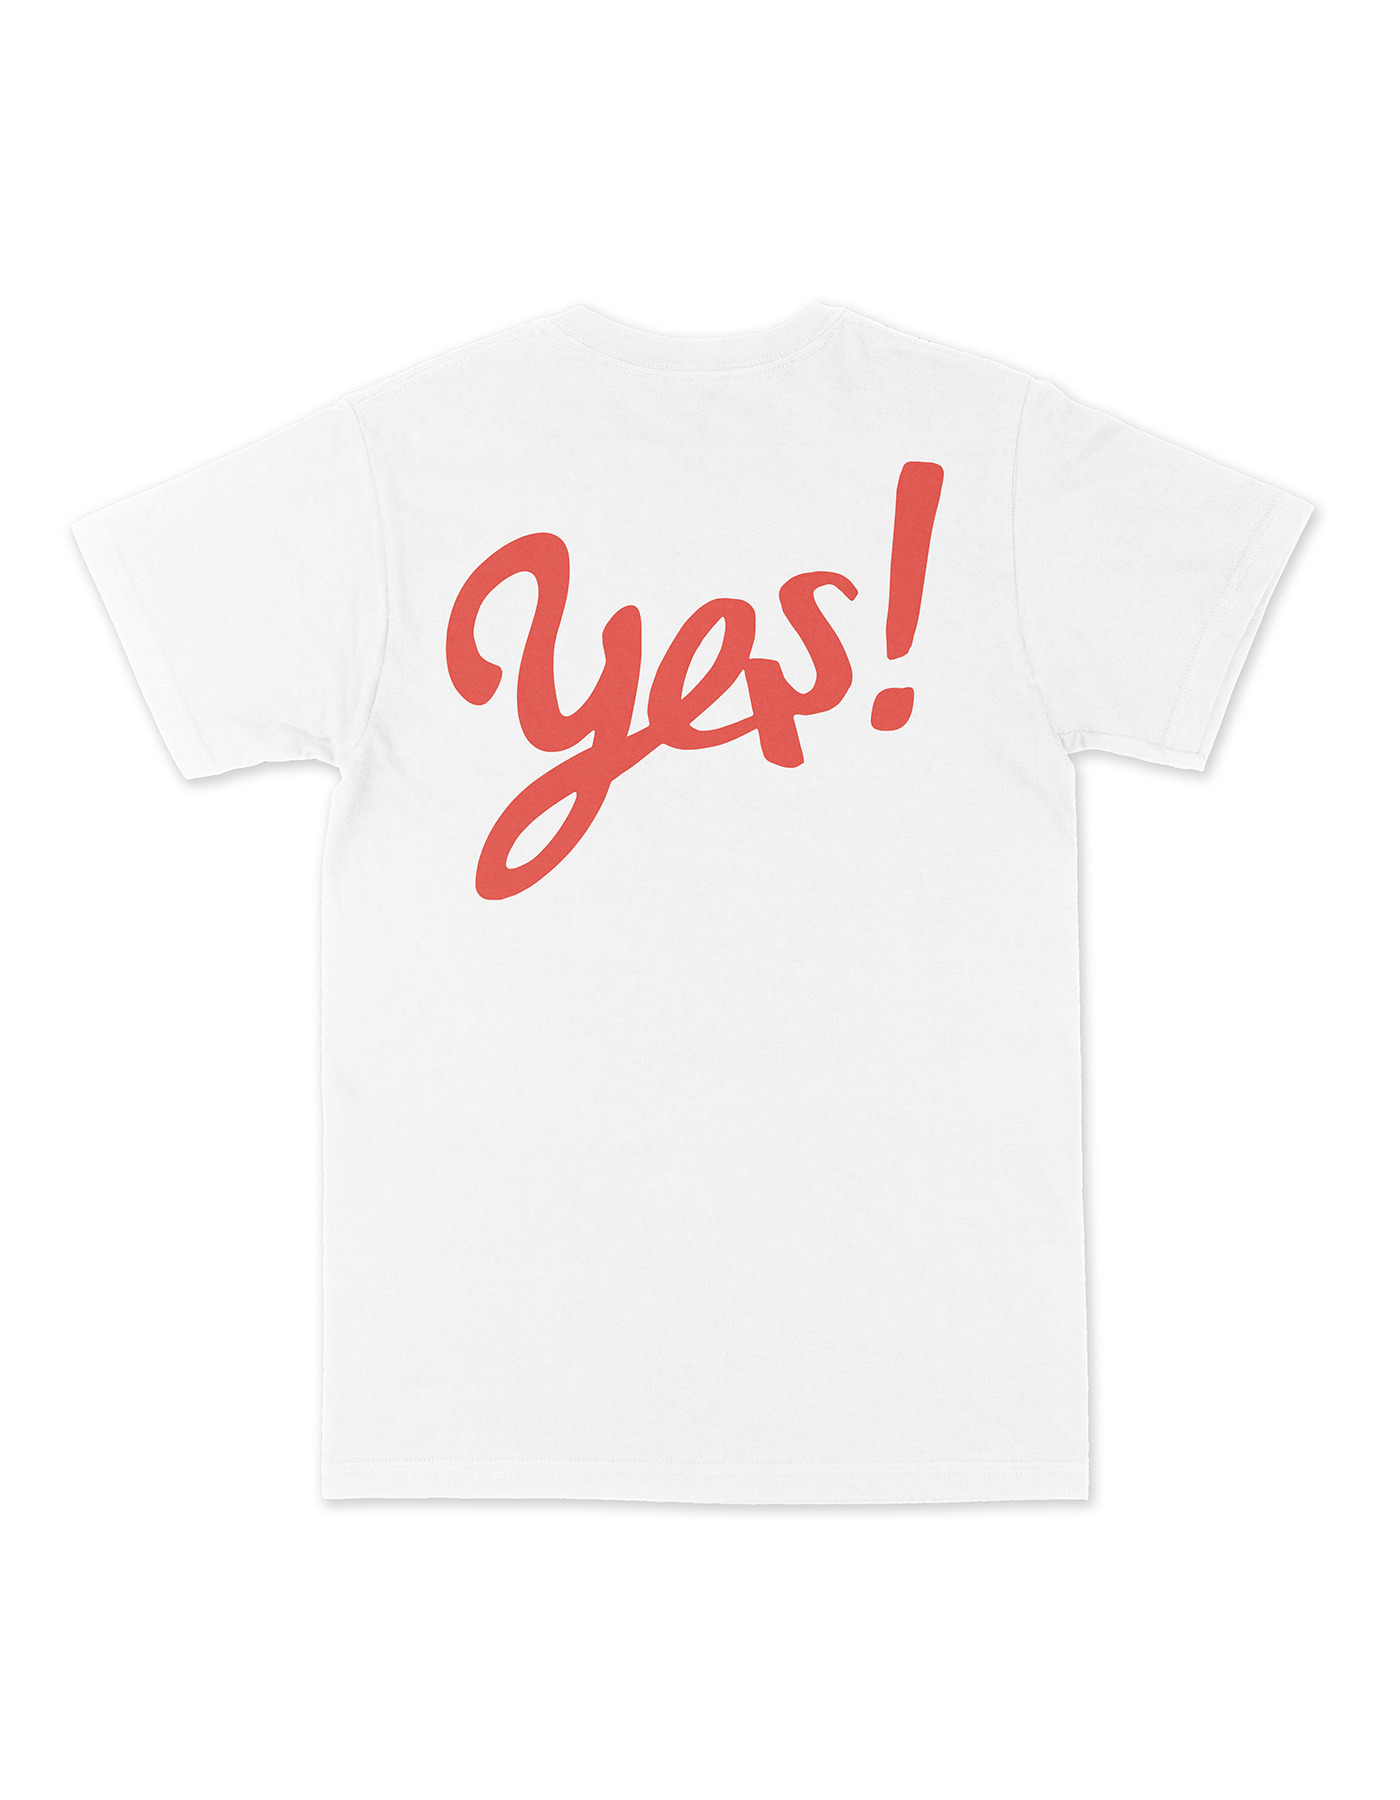 YES! T-shirts - White/Red